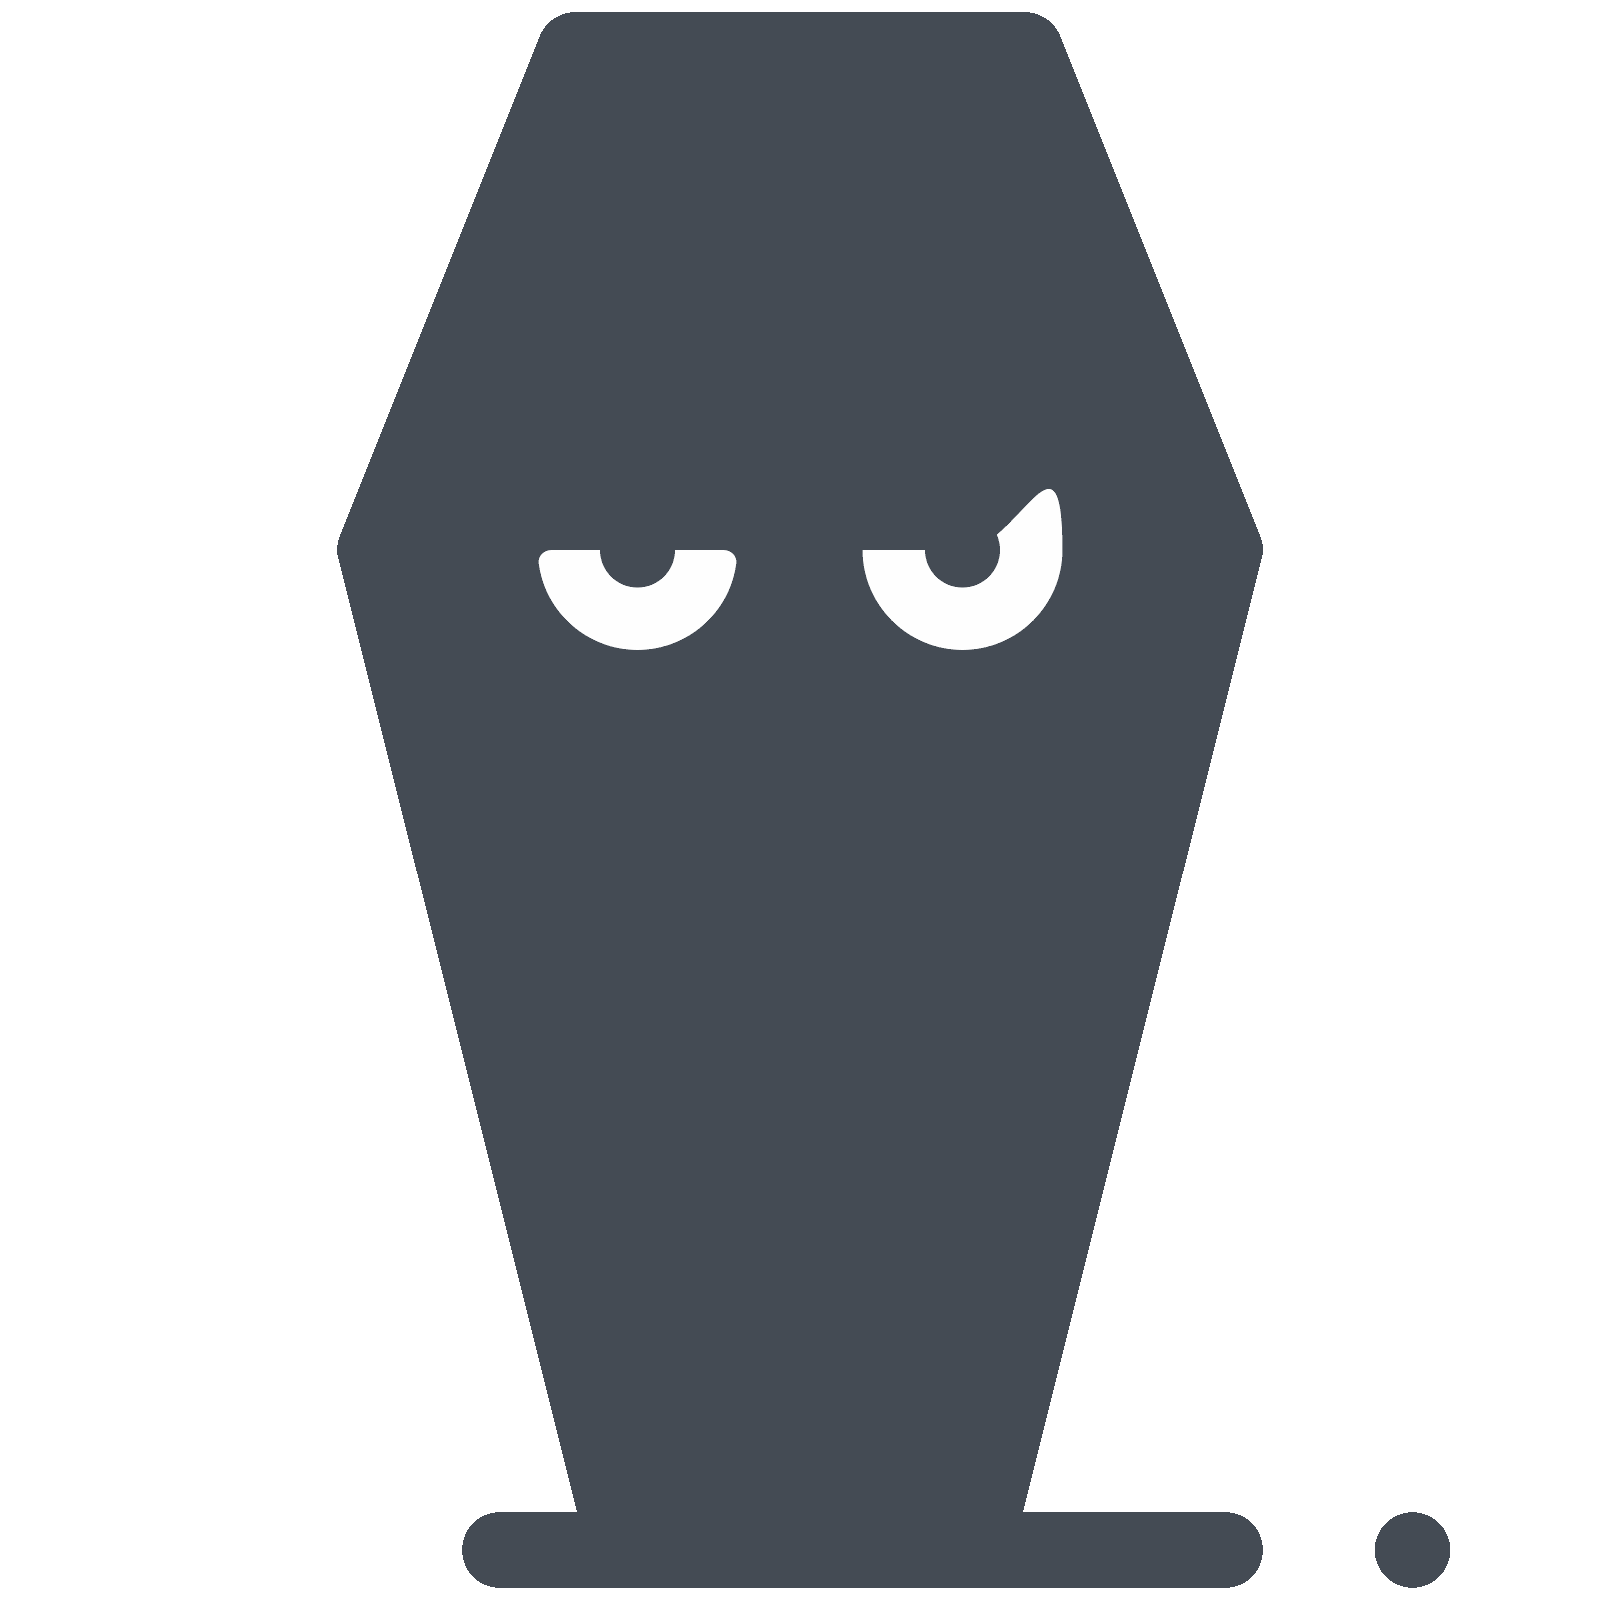 clipart black and white download Coffin Face Icon